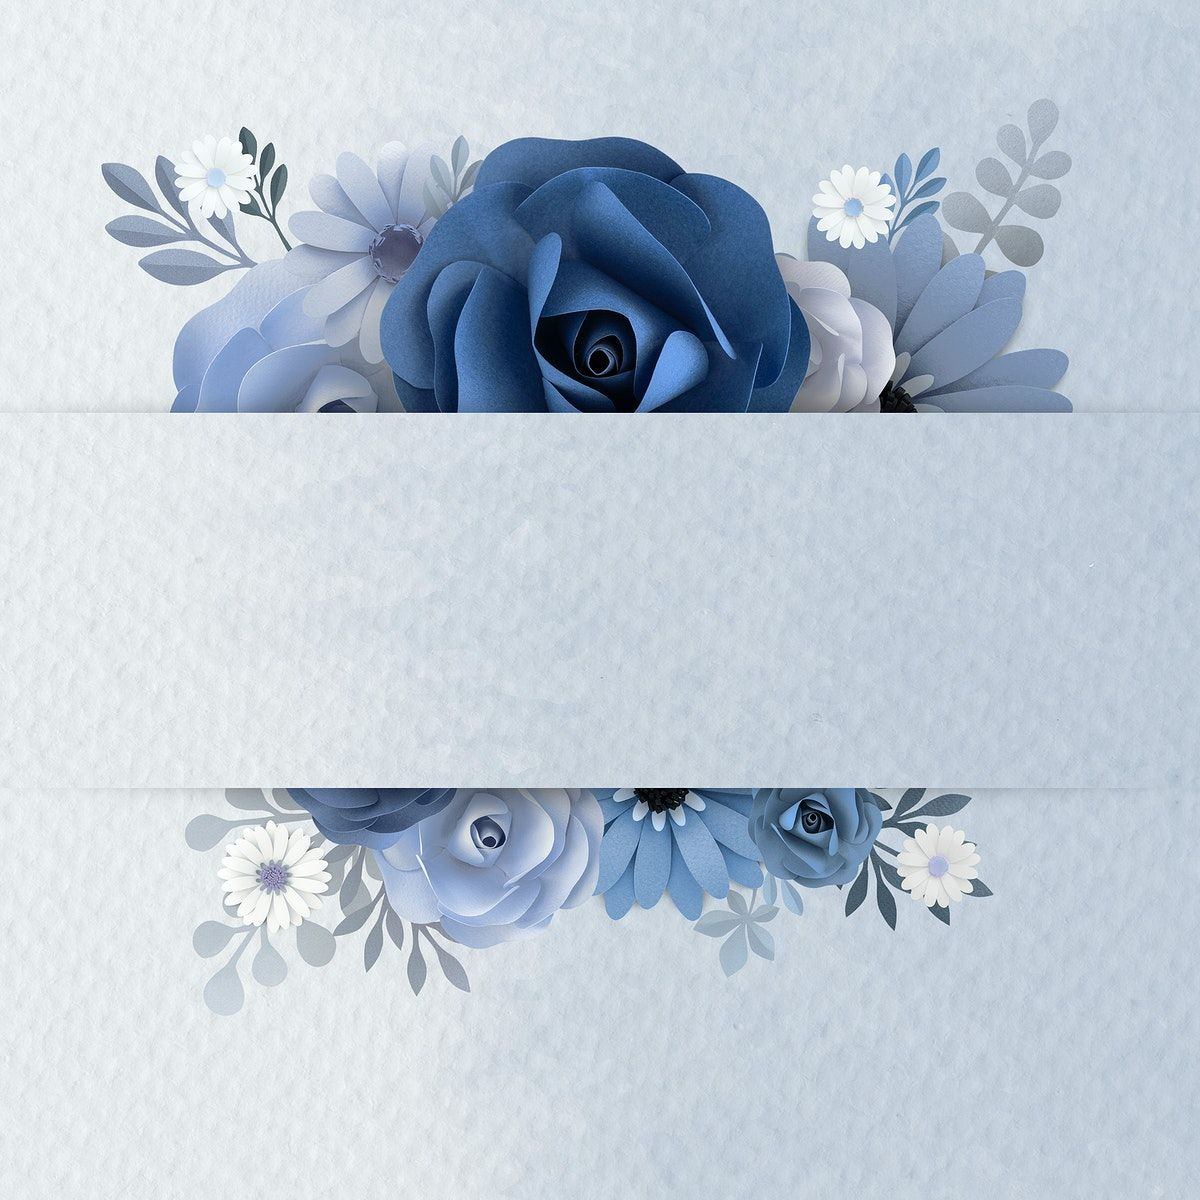 Download premium psd / image of Blue paper craft flower banner illustration by PLOYPLOY about flower paper craft, craft, floral frames, background spring, and paper craft 1201246